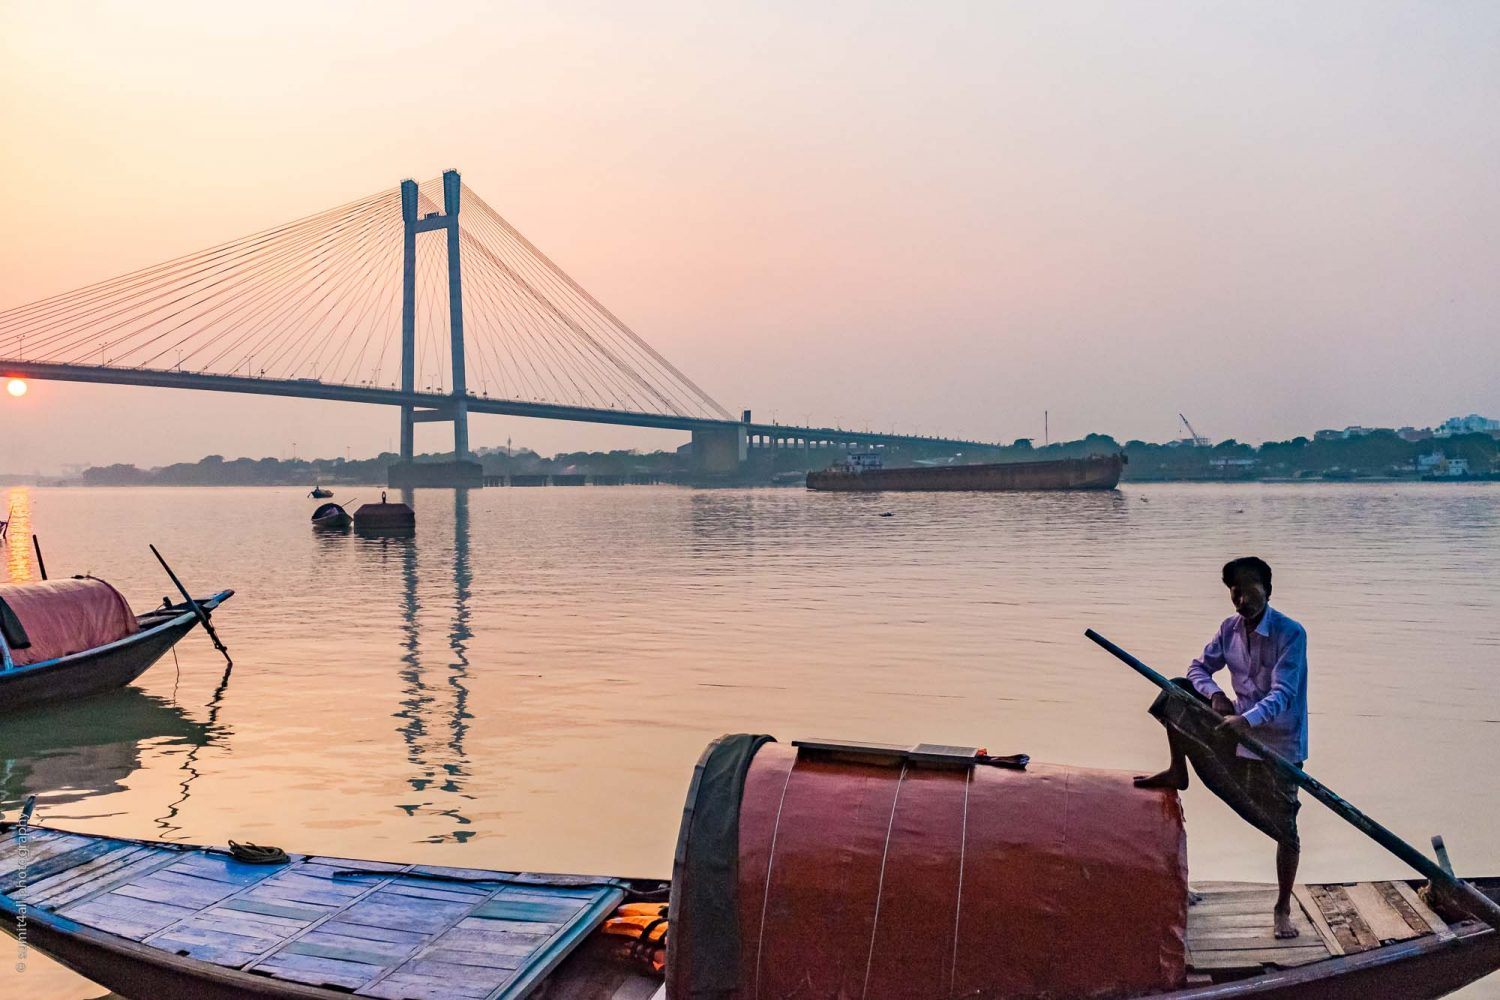 Sunset scene near the Hooghly River